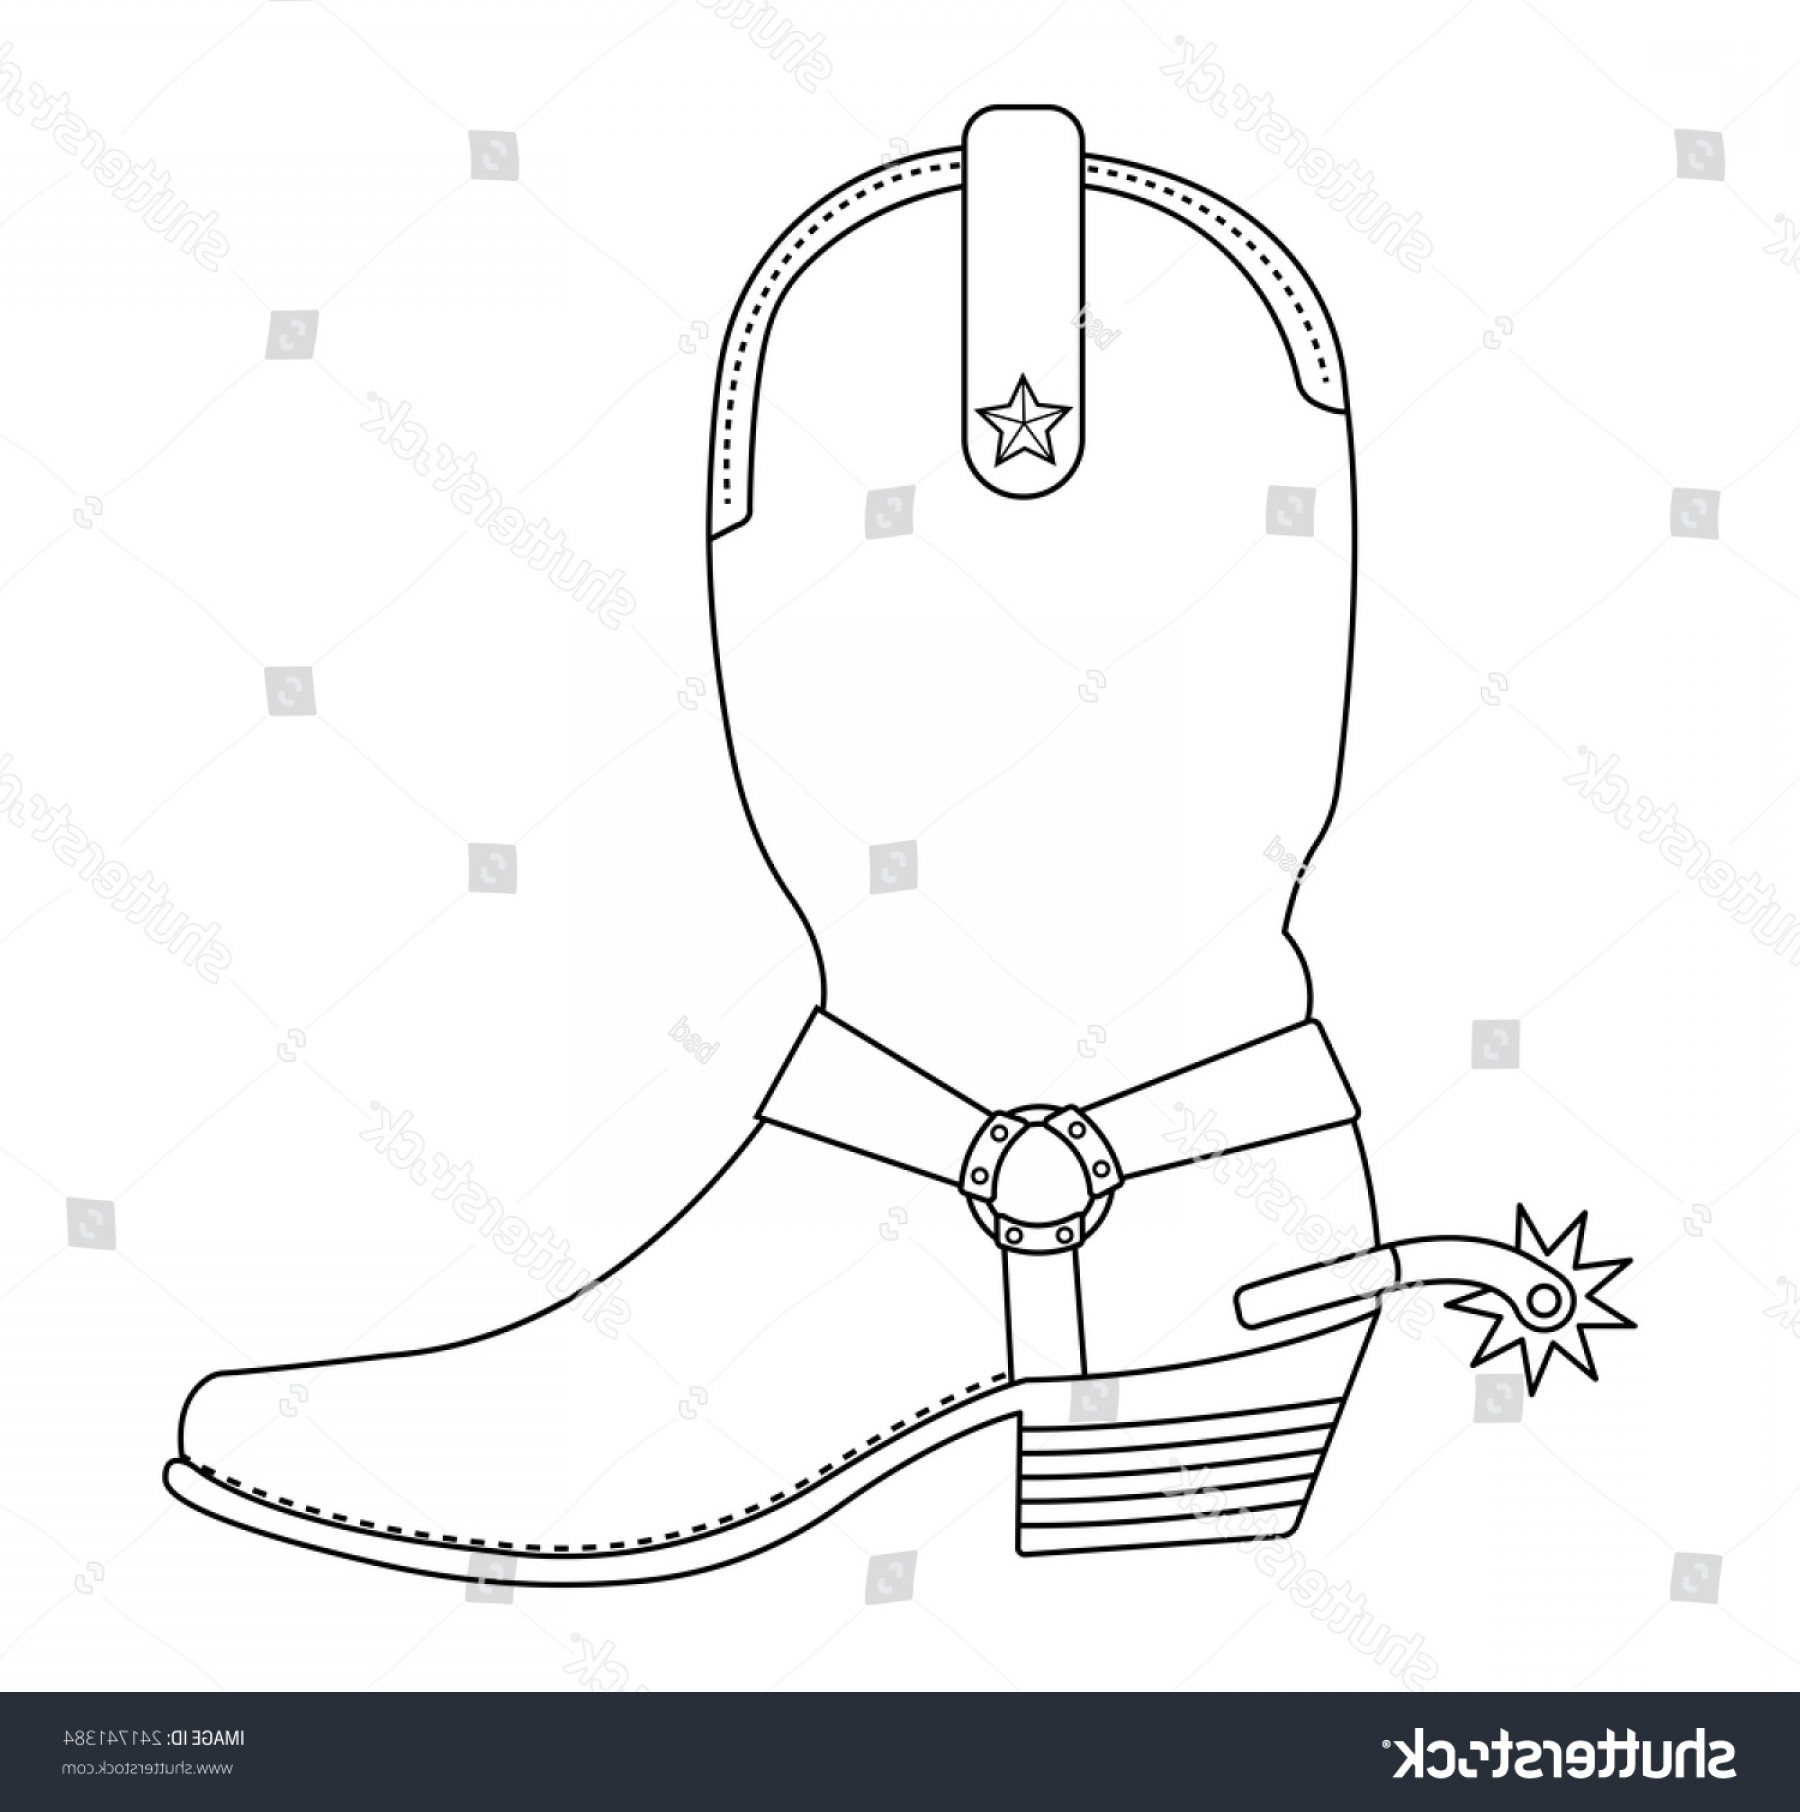 Cowboys Line Drawings Vector: Wild West Cowboy Boot Spur Star